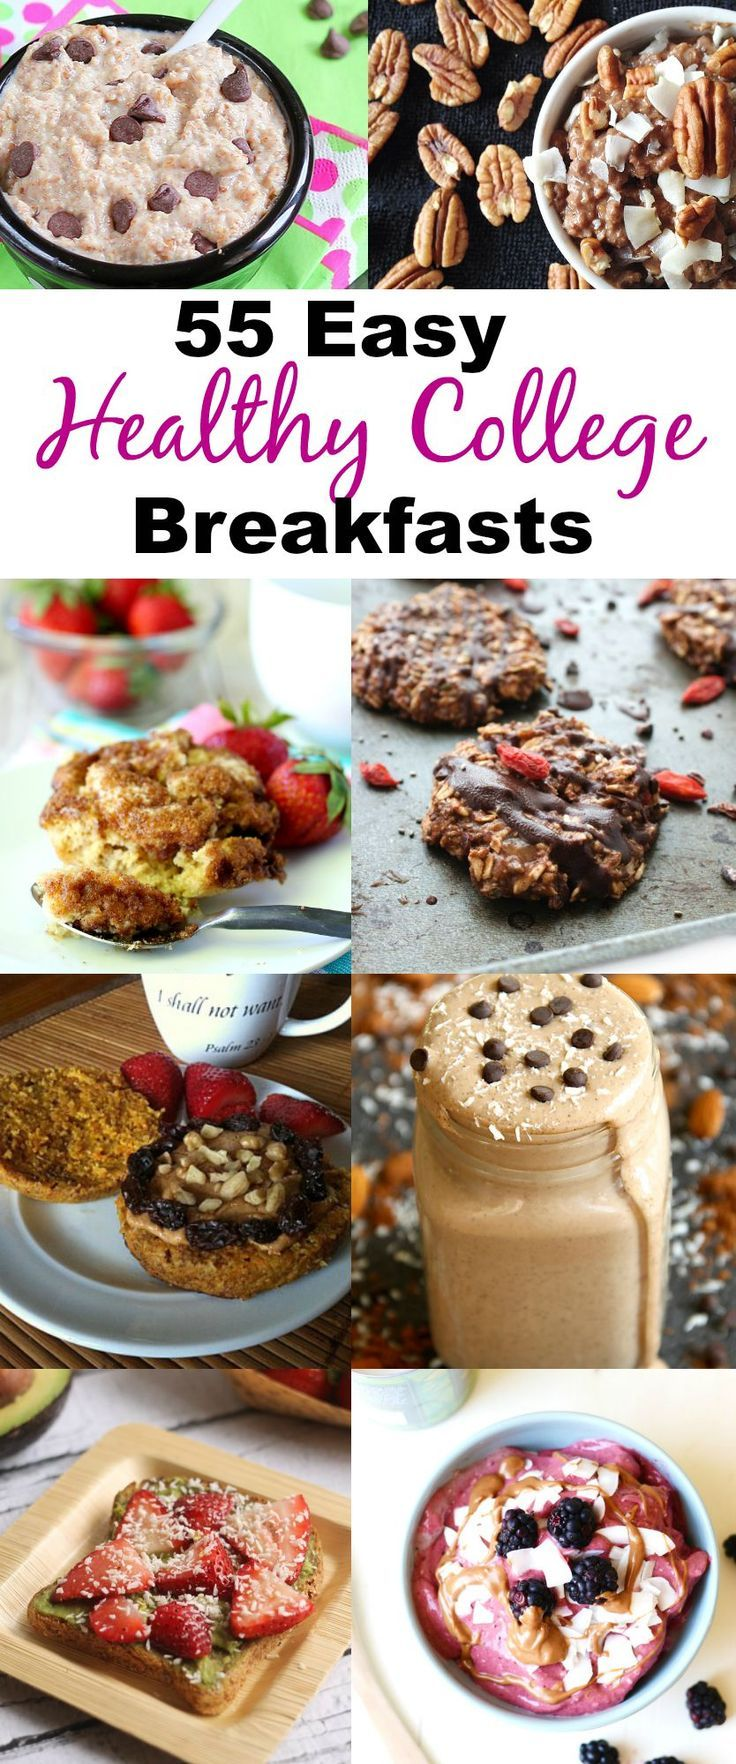 Why Would You Skip Breakfast In College When You Can Make A Delicious, Easy  And Healthy Breakfast In Your Dorm Room? 55 Healthy Breakfast Recipes That  Can ... Part 68